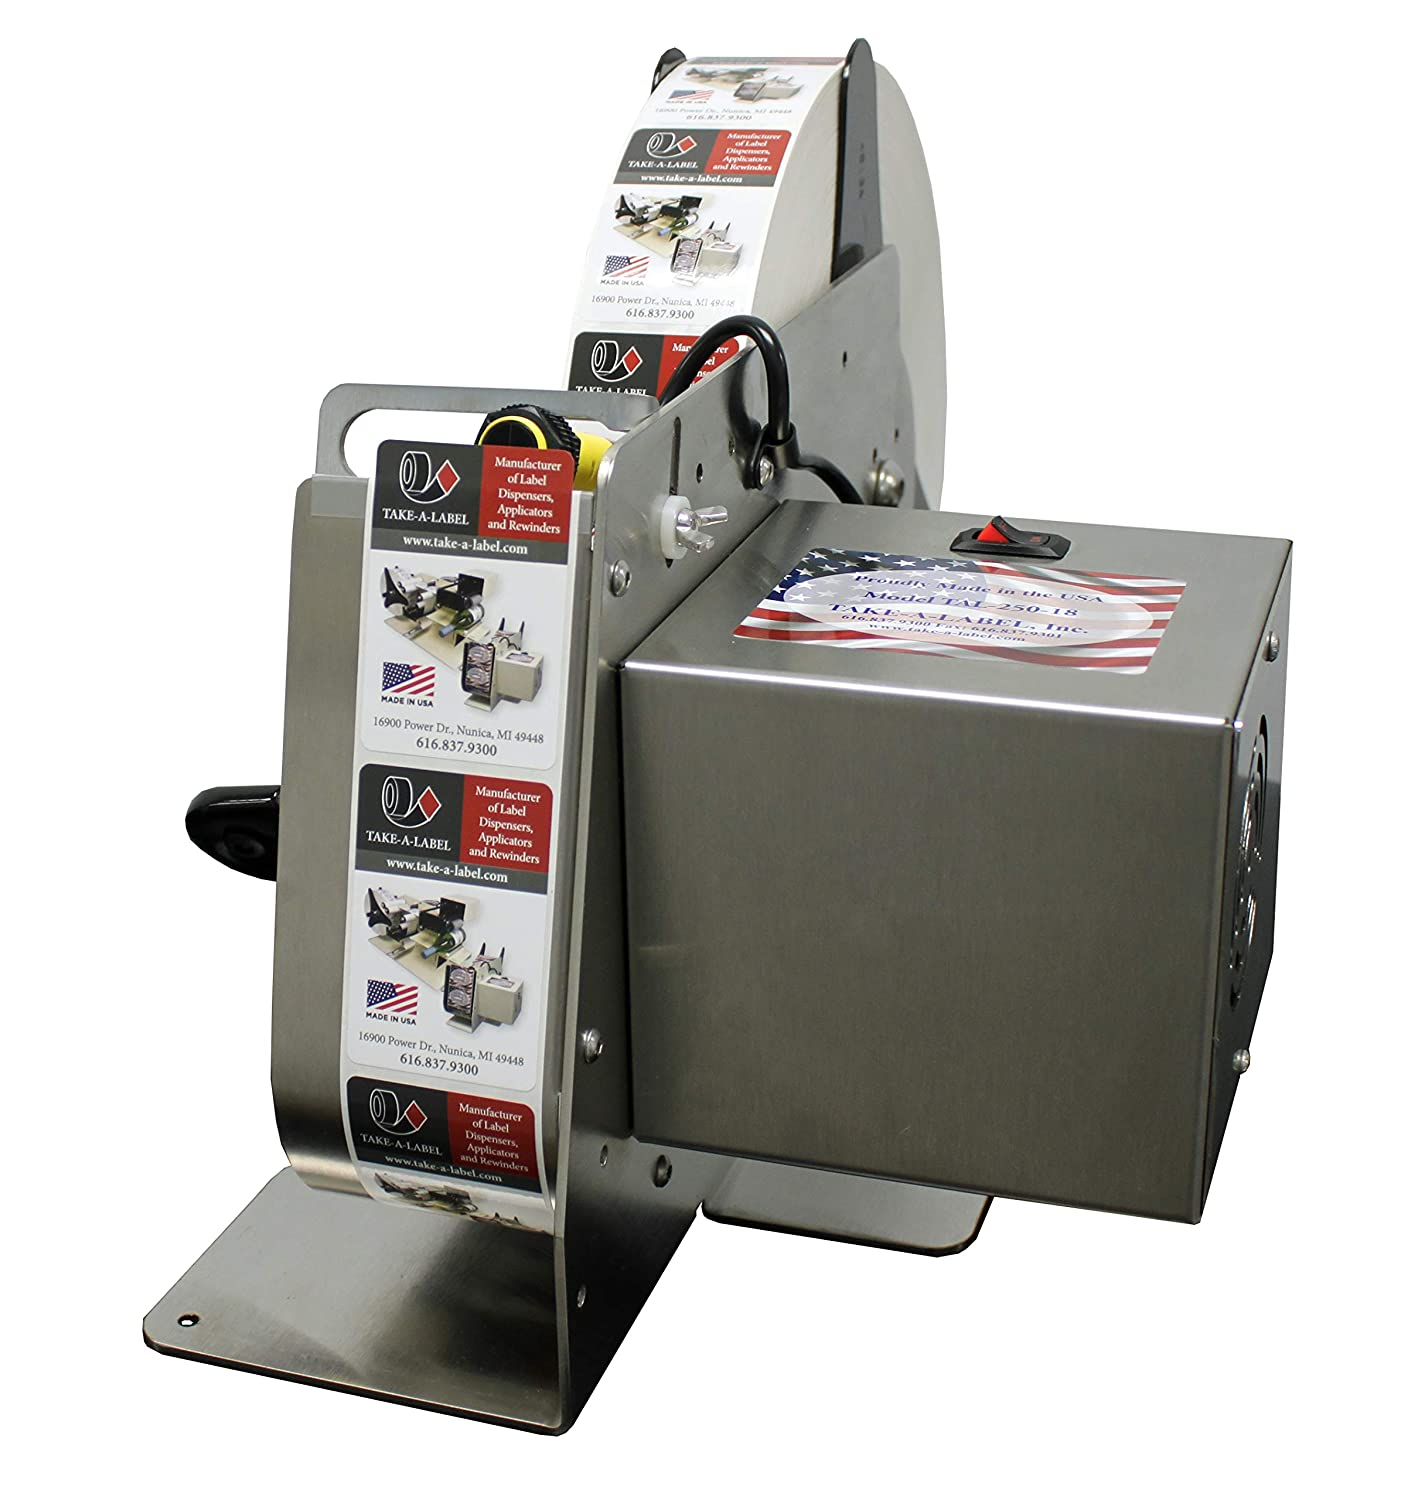 TAL-250 Stainless Label Dispenser with Photo Cell